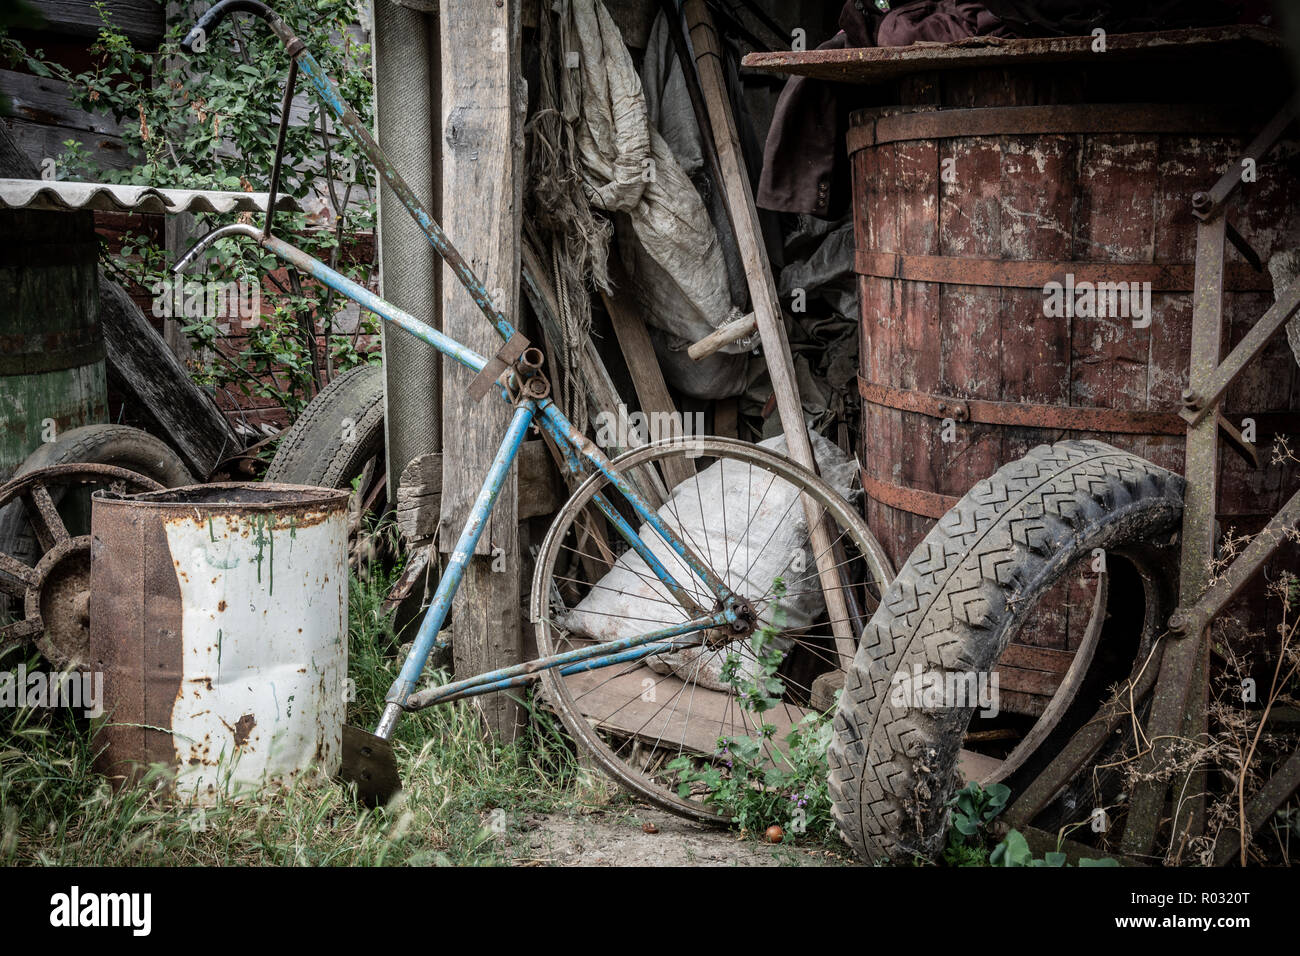 Hand Plow Stock Photos & Hand Plow Stock Images - Alamy